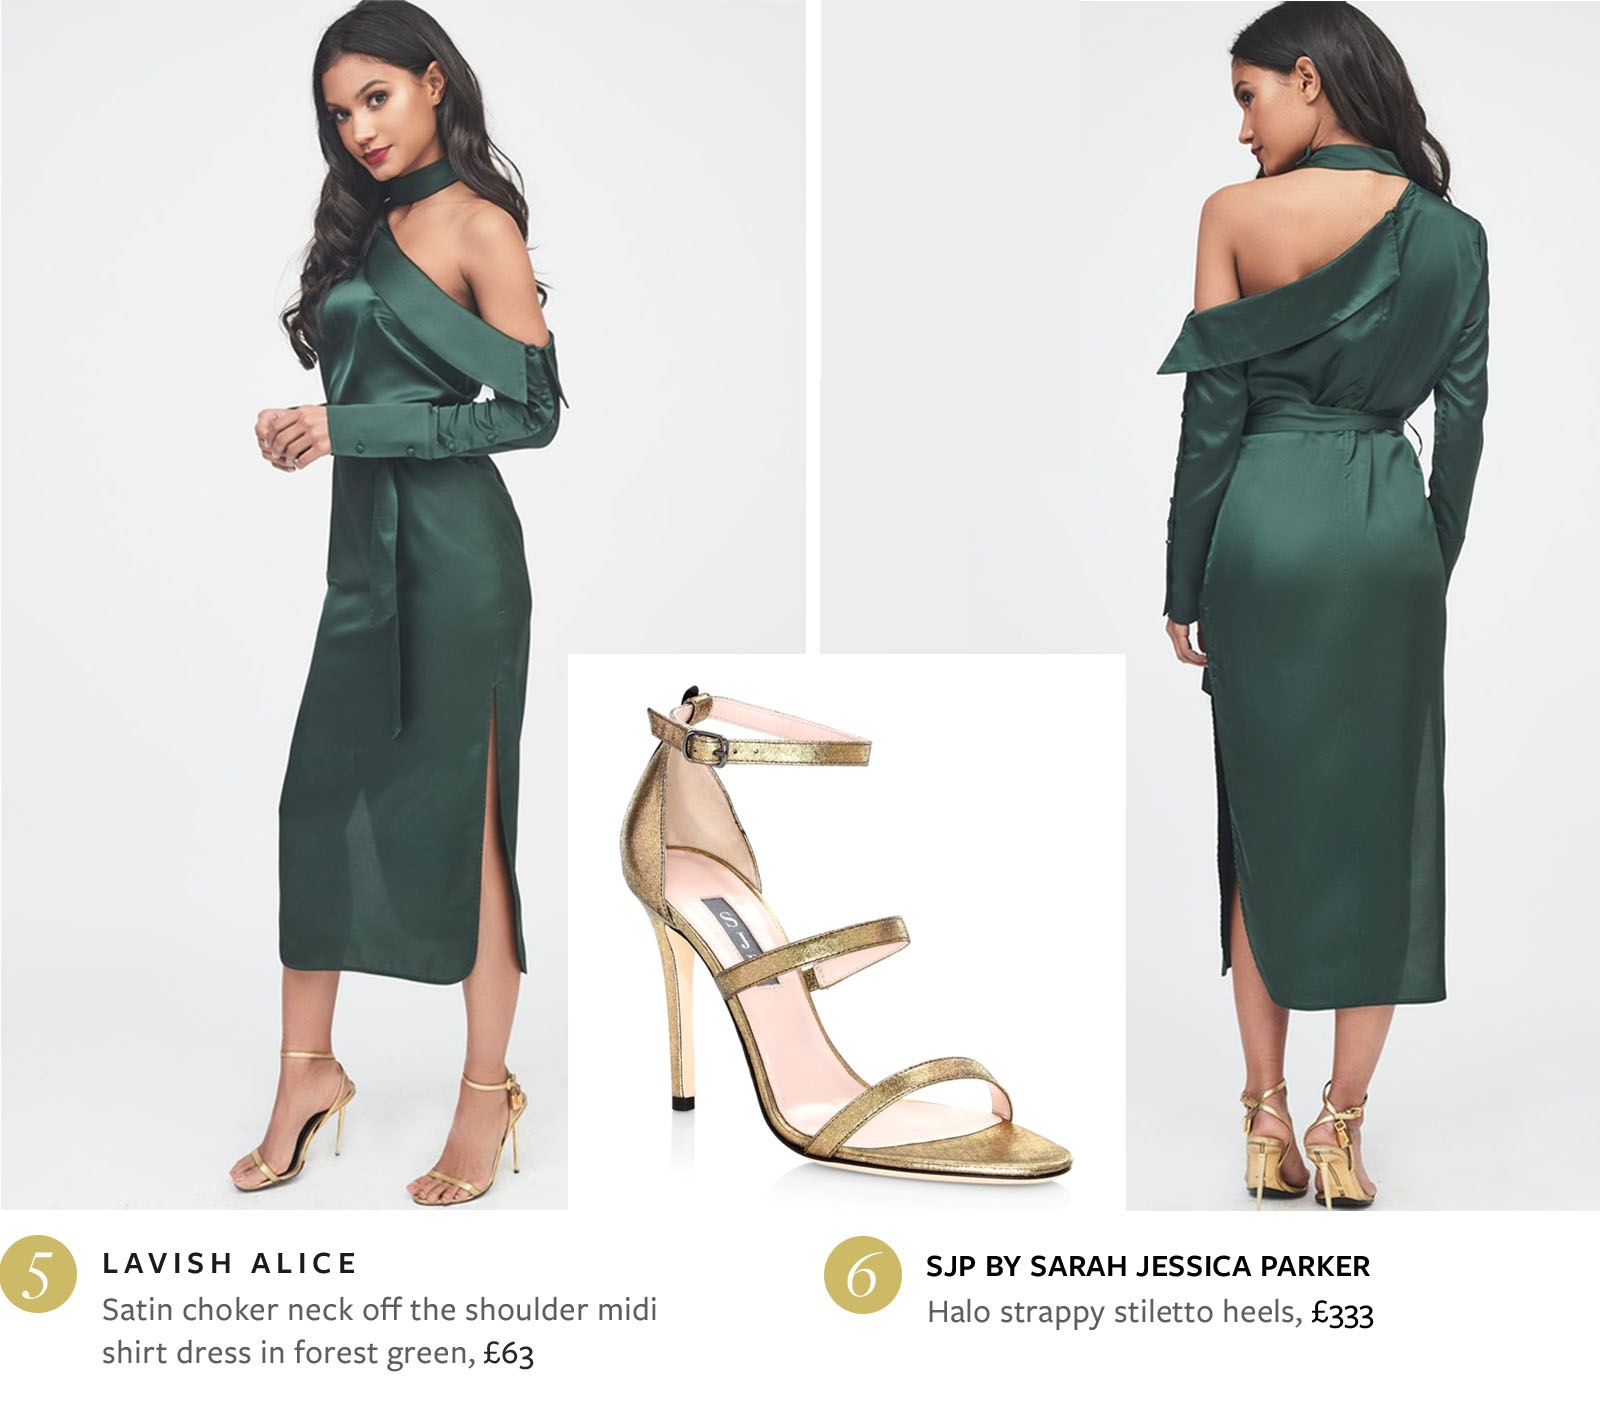 Satin Choker Neck Off The Shoulder Midi Shirt Dress